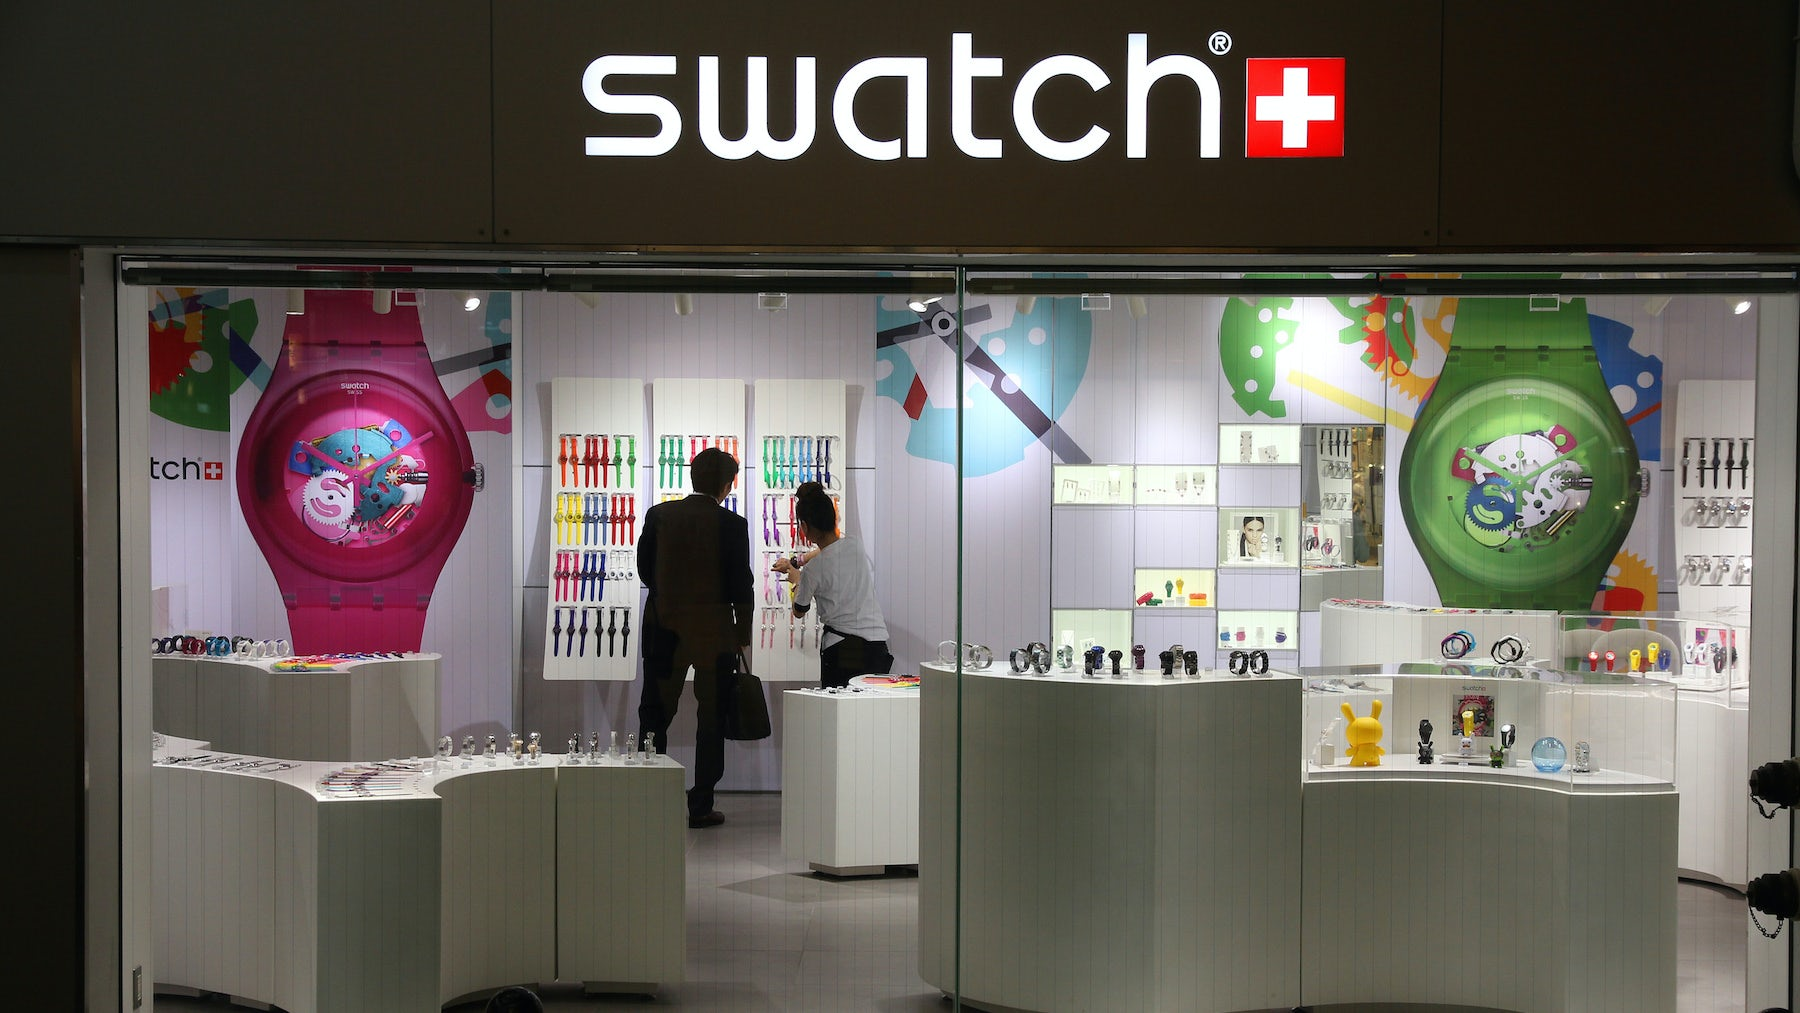 Swatch store | Source: Shutterstock